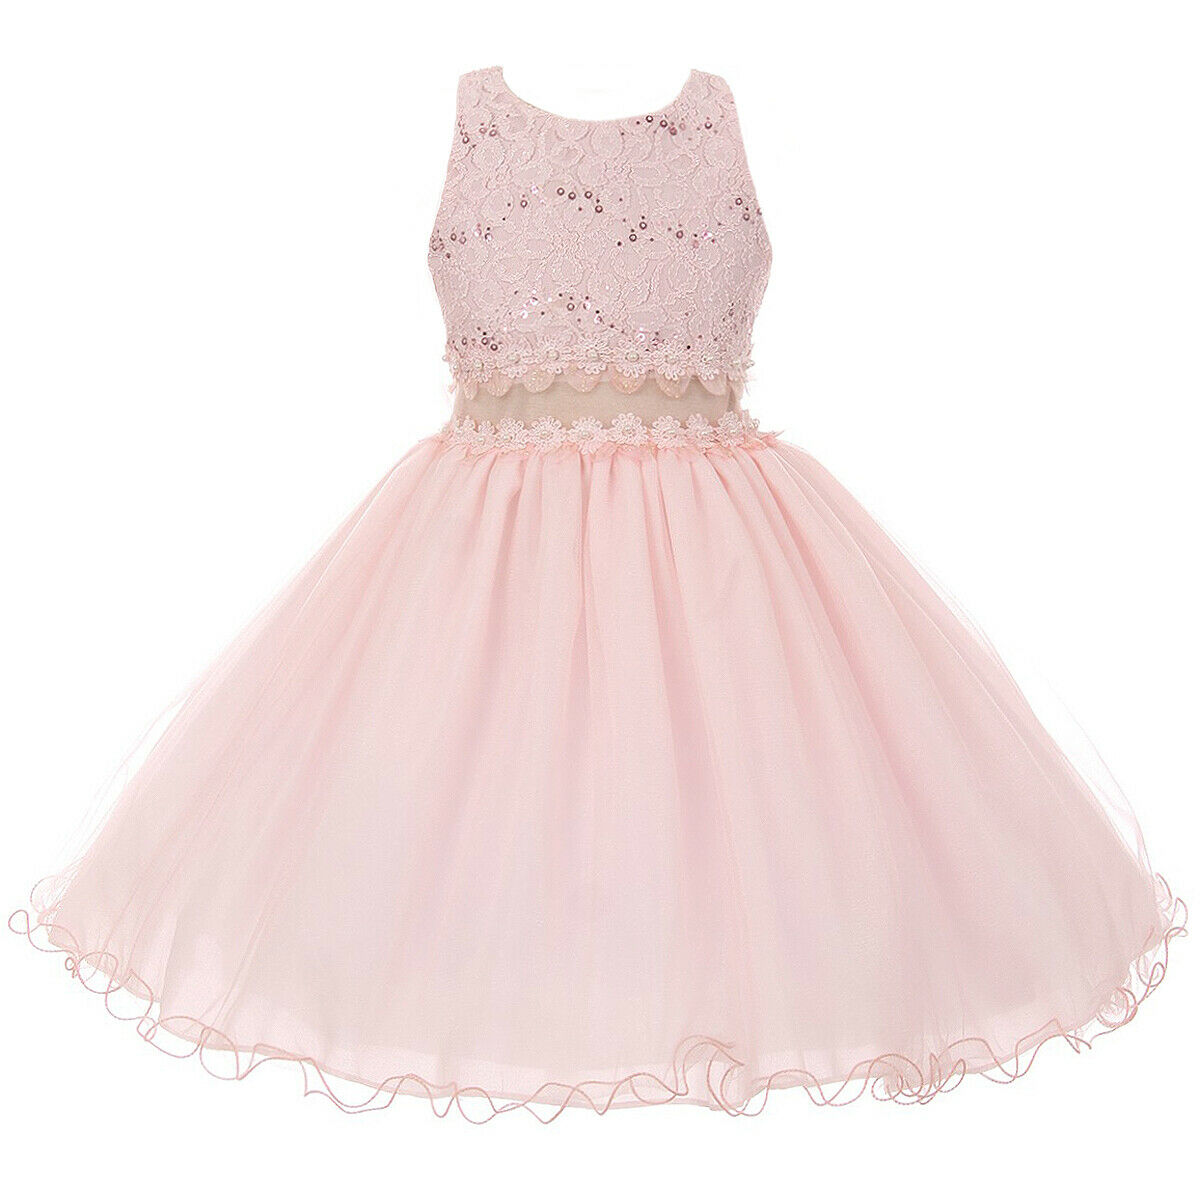 Blush Flower Girl Dresses for Special Occasions Party Bridesmaid Birthday